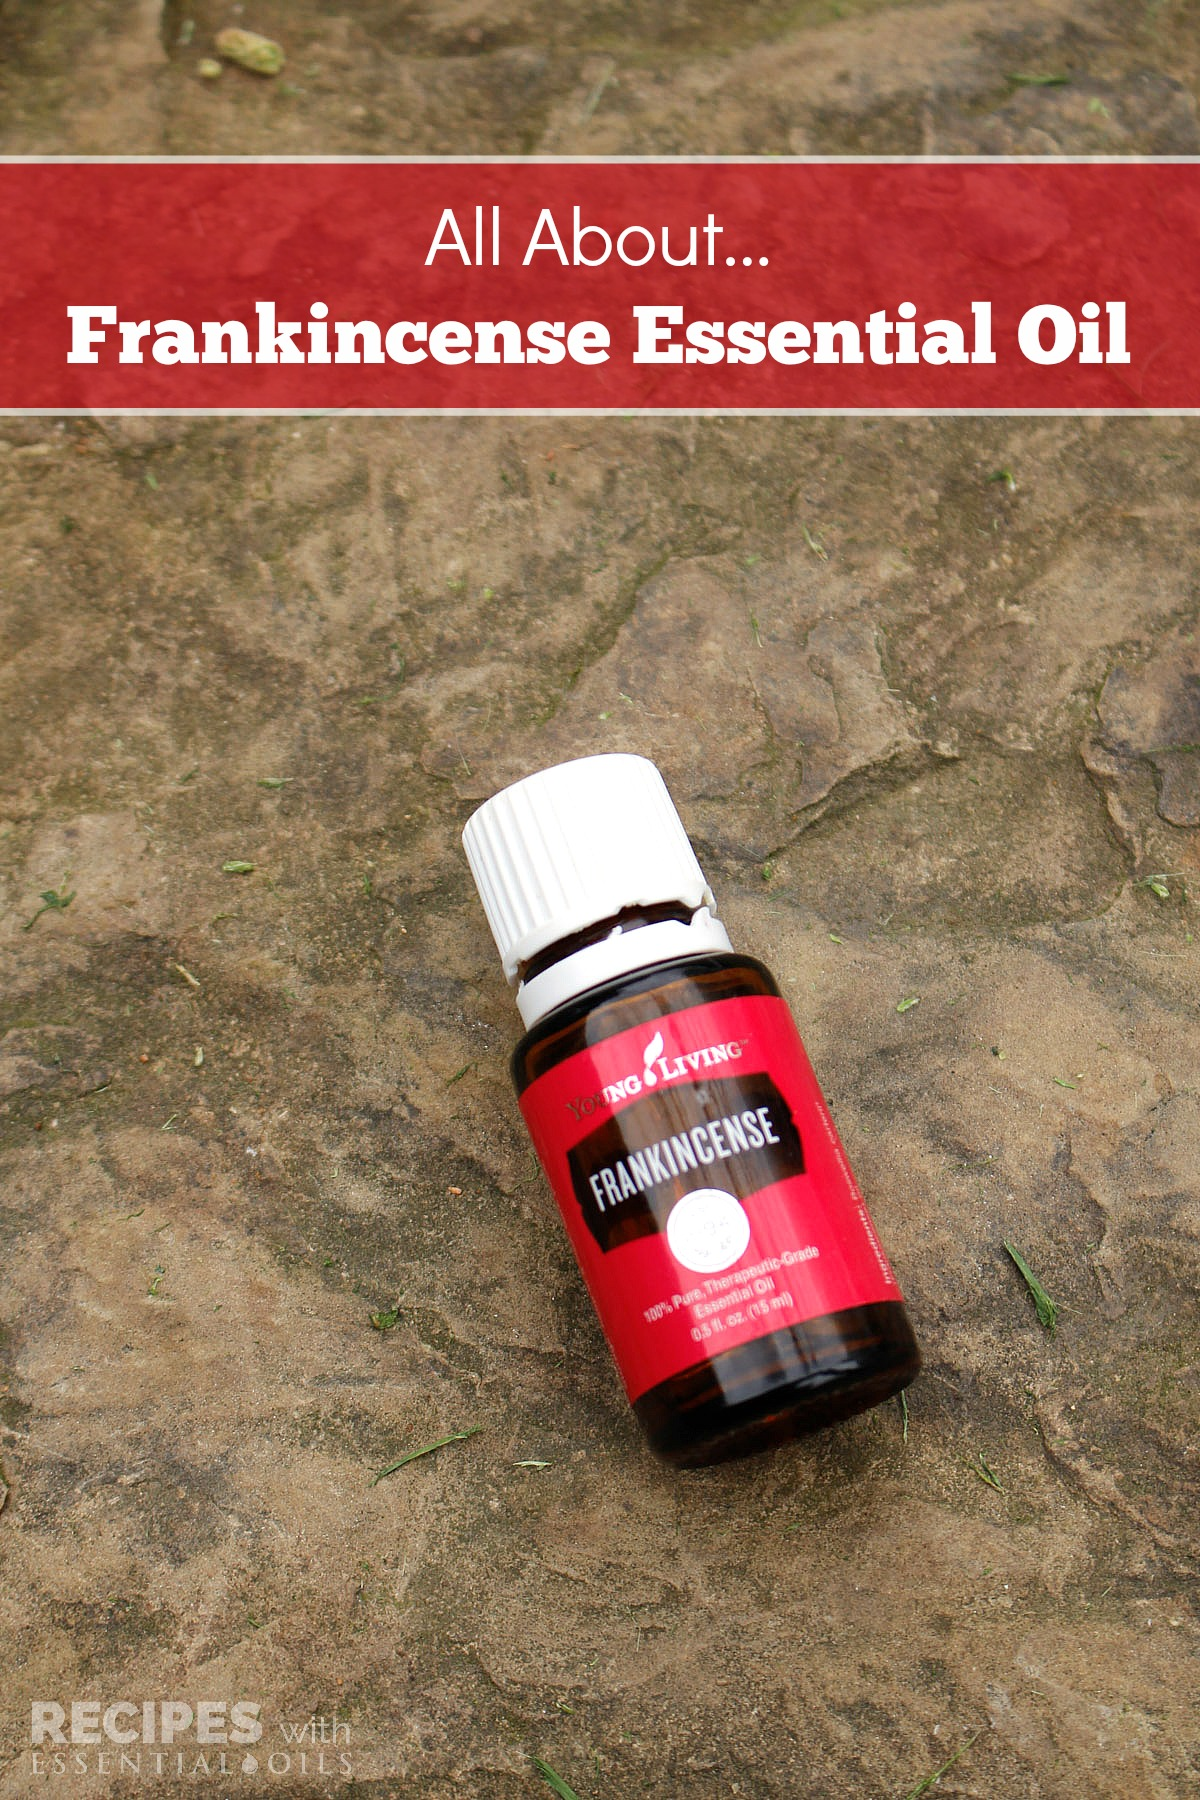 Getting to Know Your Essential Oils: Frankincense Essential Oil from RecipeswithEssentialOils.com